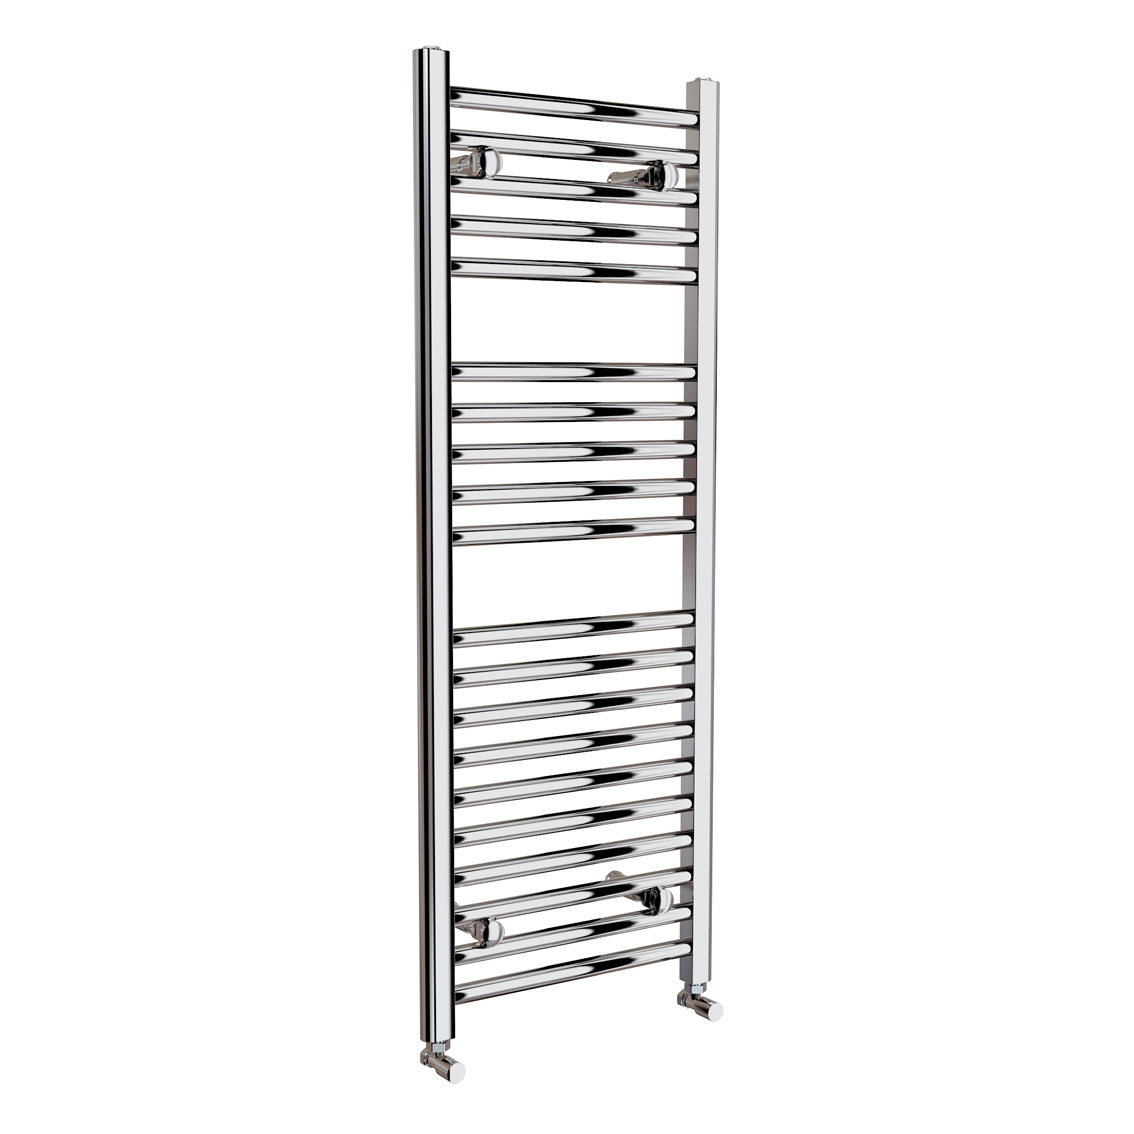 Natasha ladder rail straight modern electric towel radiator in chrome - Vs 650x400mm Chrome Straight Rail Ladder Towel Radiator Natasha